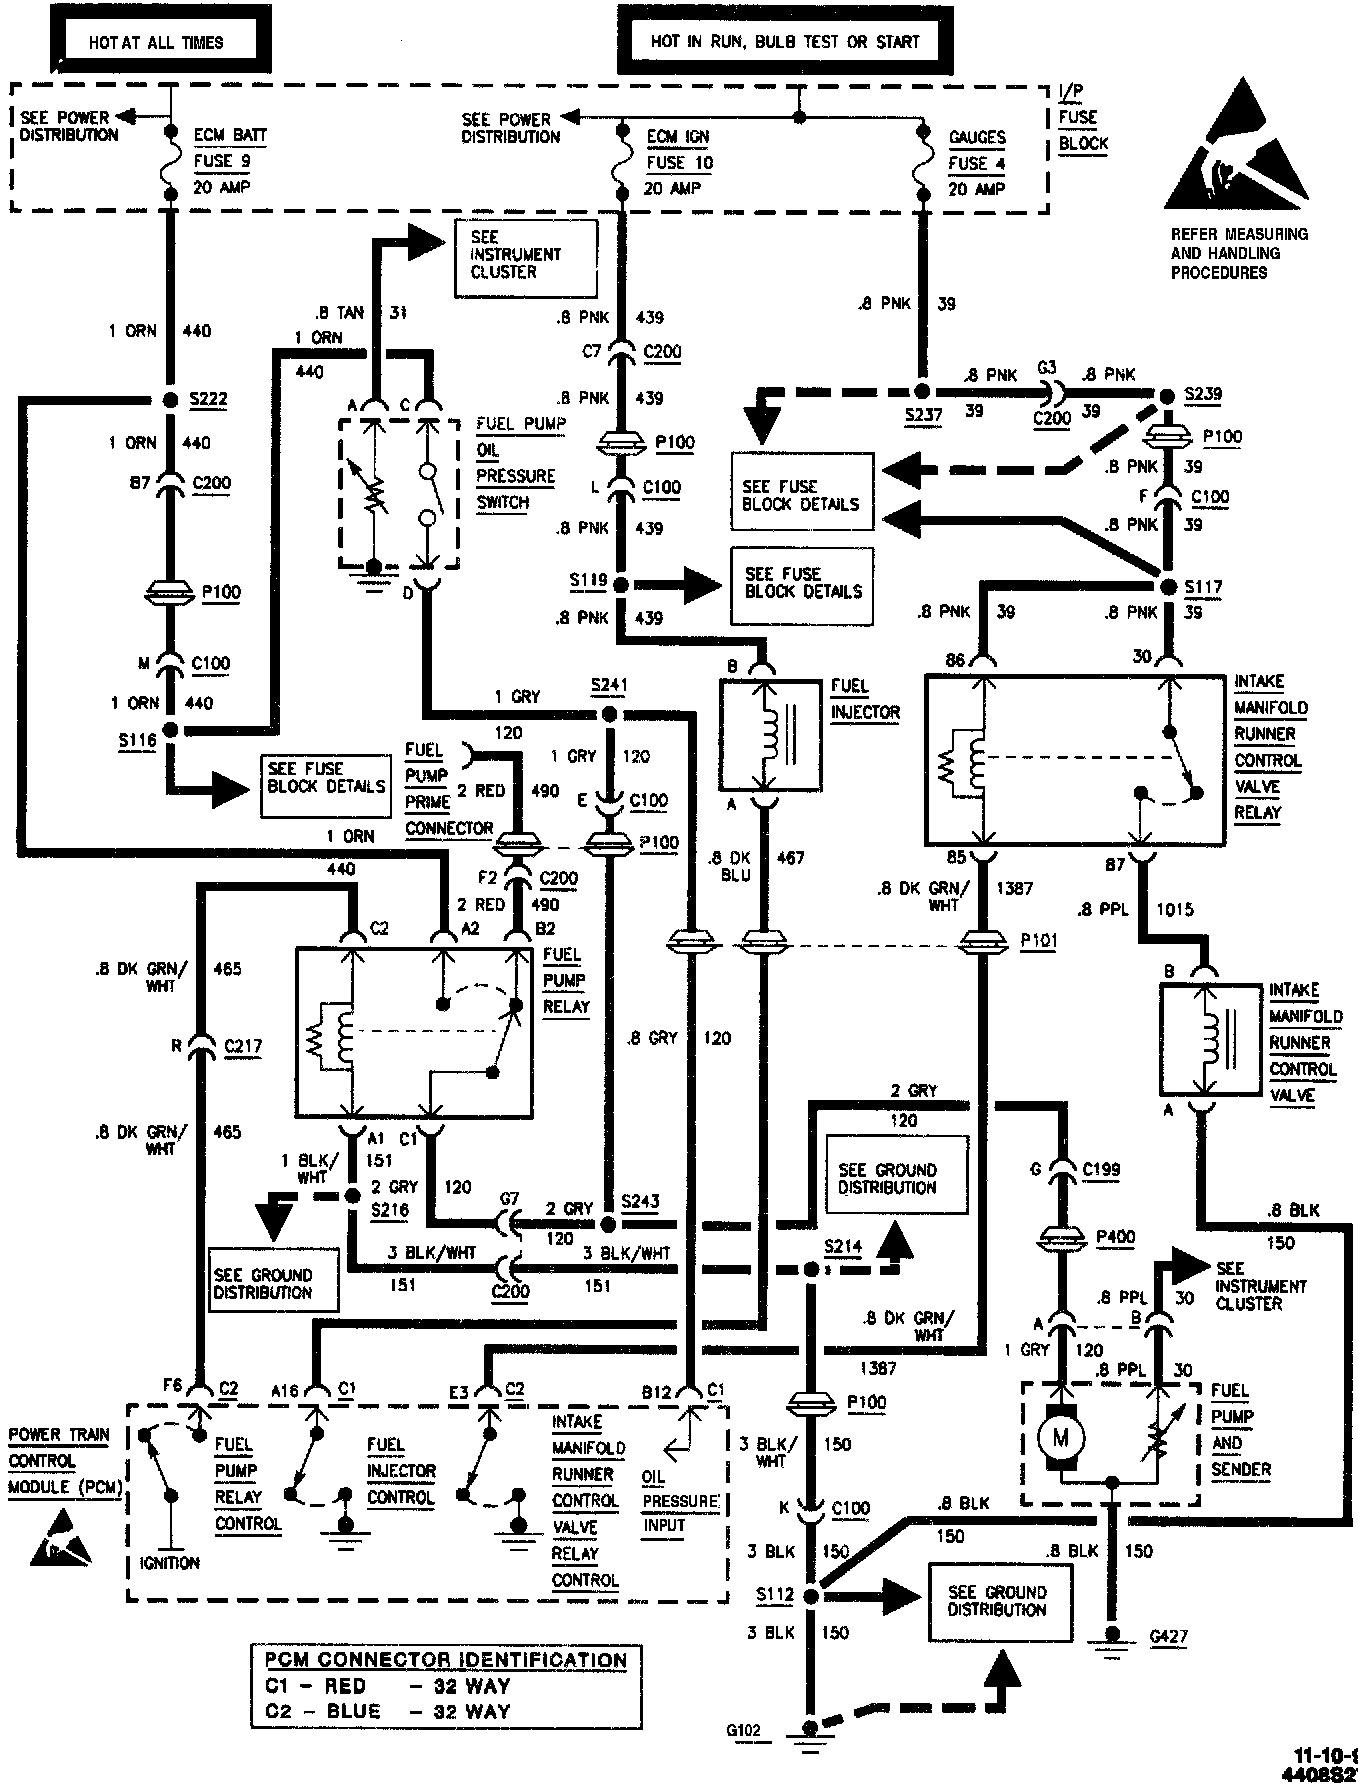 1998 s10 fuel system diagram online wiring diagram 97 Subaru Outback Sport 95 s10 fuse diagram wiring diagram specialties2004 colorado wiring diagram wiring diagram database2004 colorado wiring diagram